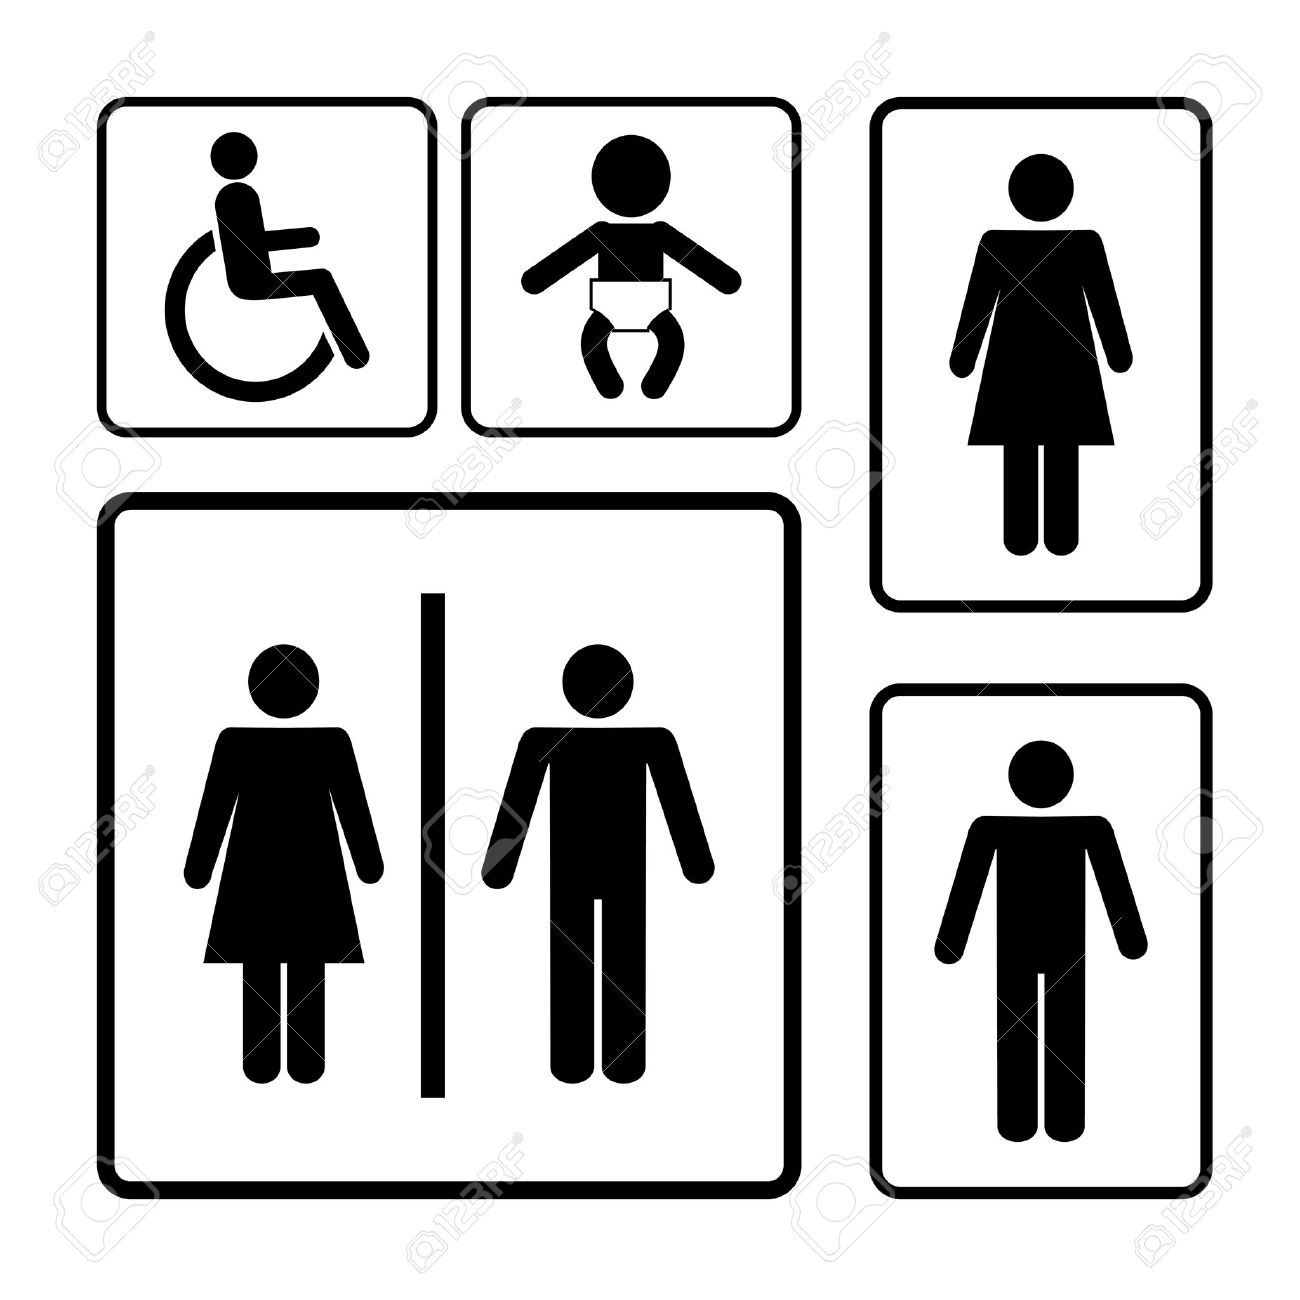 Bathroom Signs Black And White restroom vector signs black silhouettes on white background